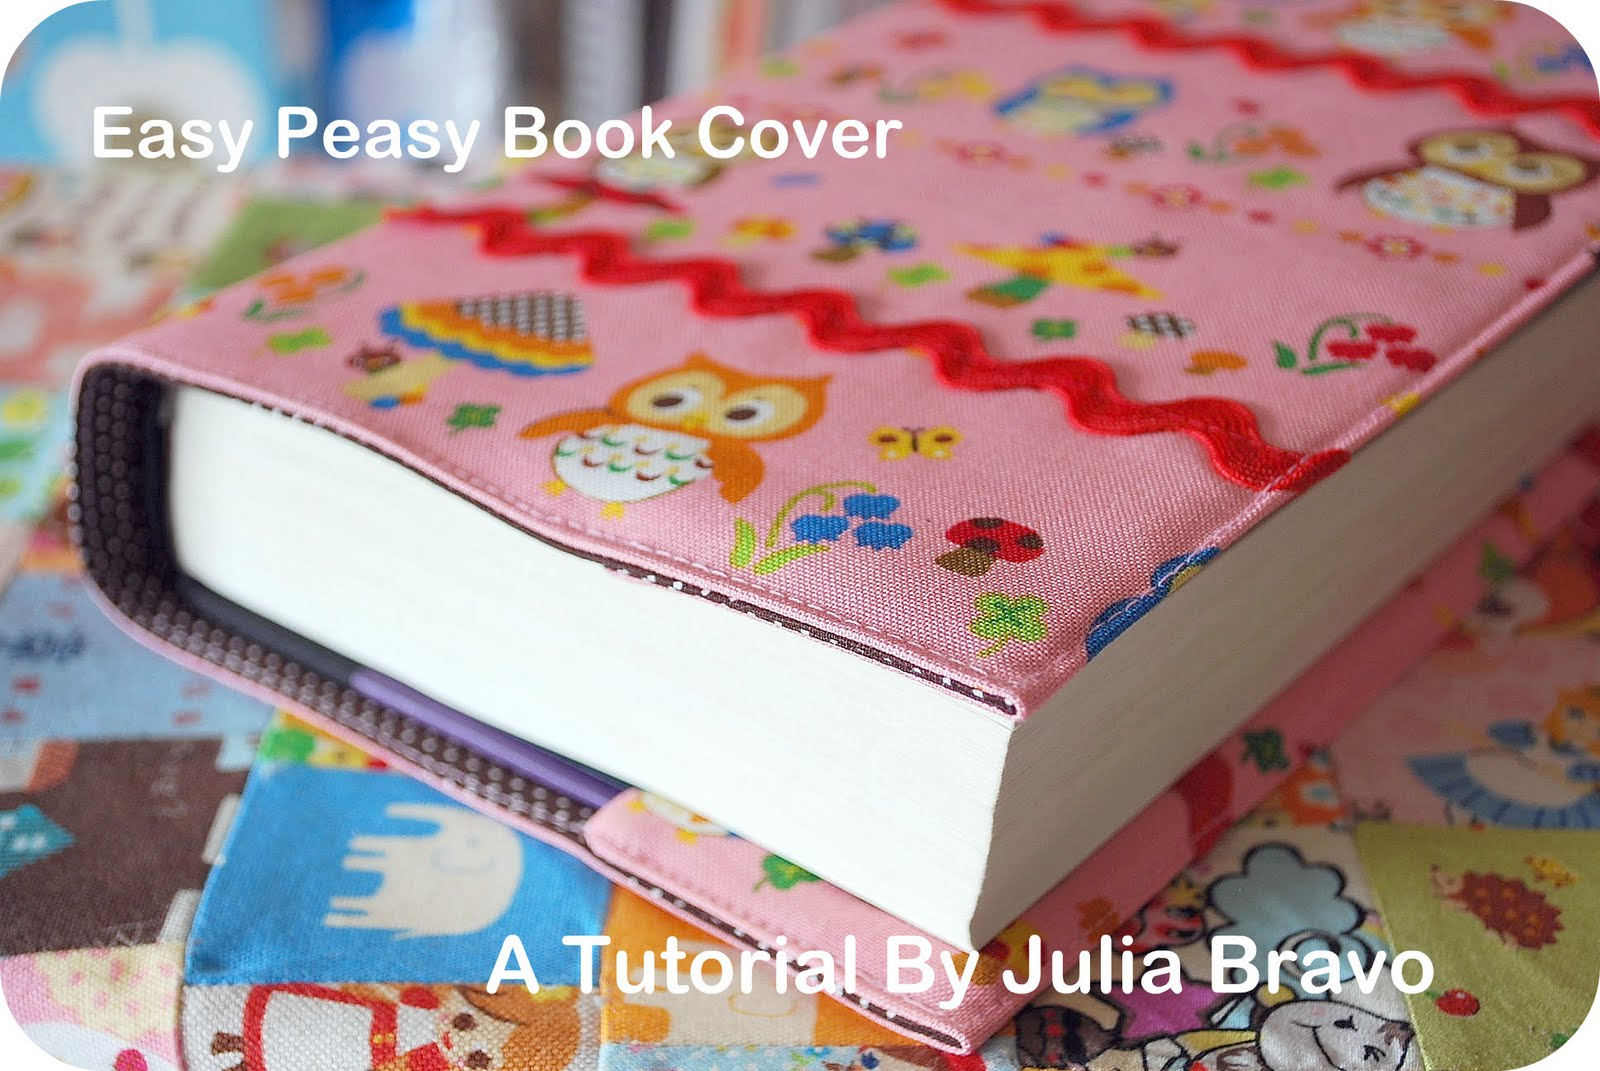 Fabric Cover For Book : Stitches book cover tutorial image heavy